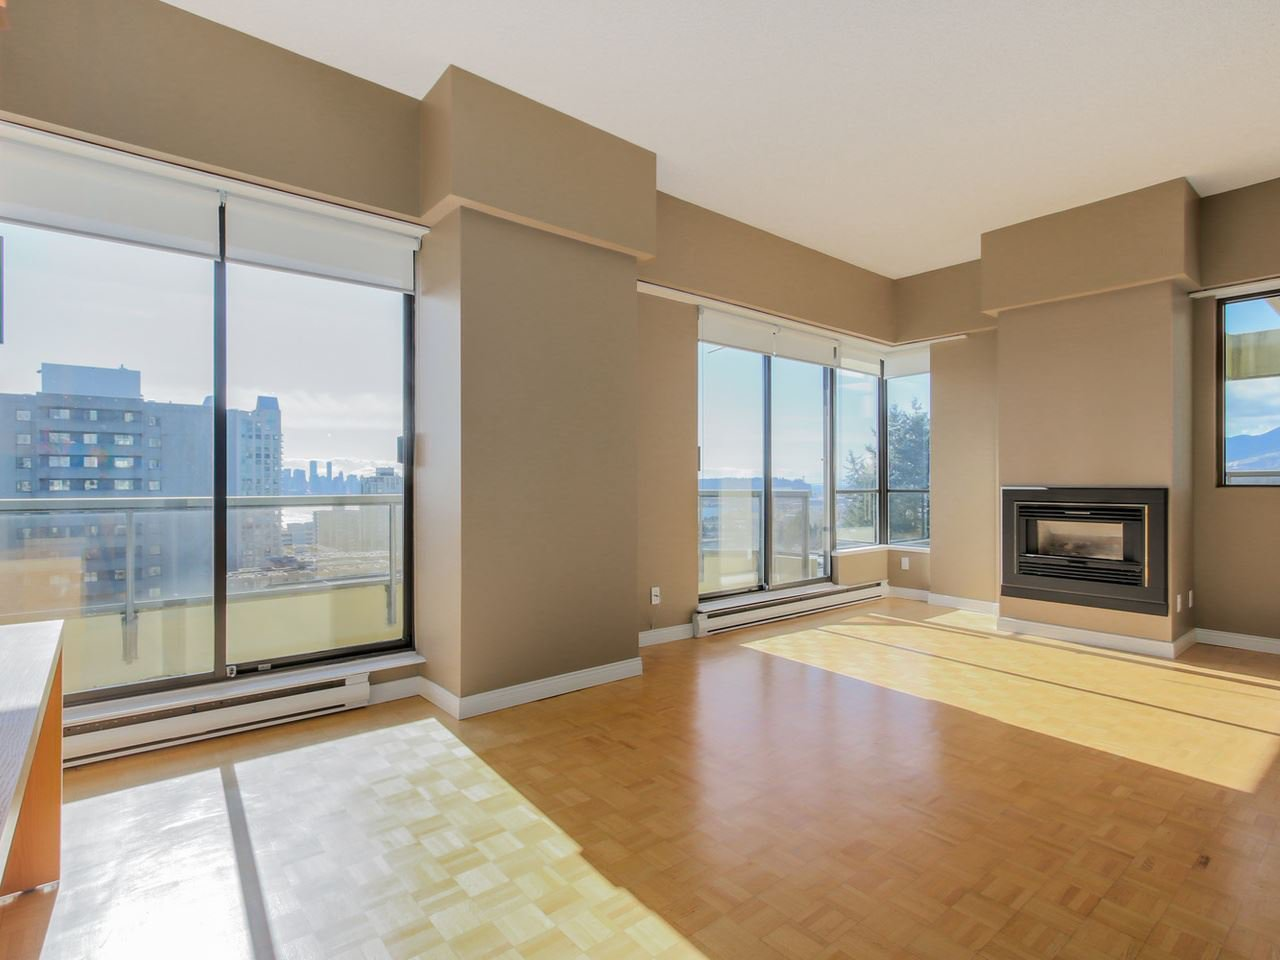 "Photo 2: Photos: 801 505 LONSDALE Avenue in North Vancouver: Lower Lonsdale Condo for sale in ""La Premiere"" : MLS®# R2047906"